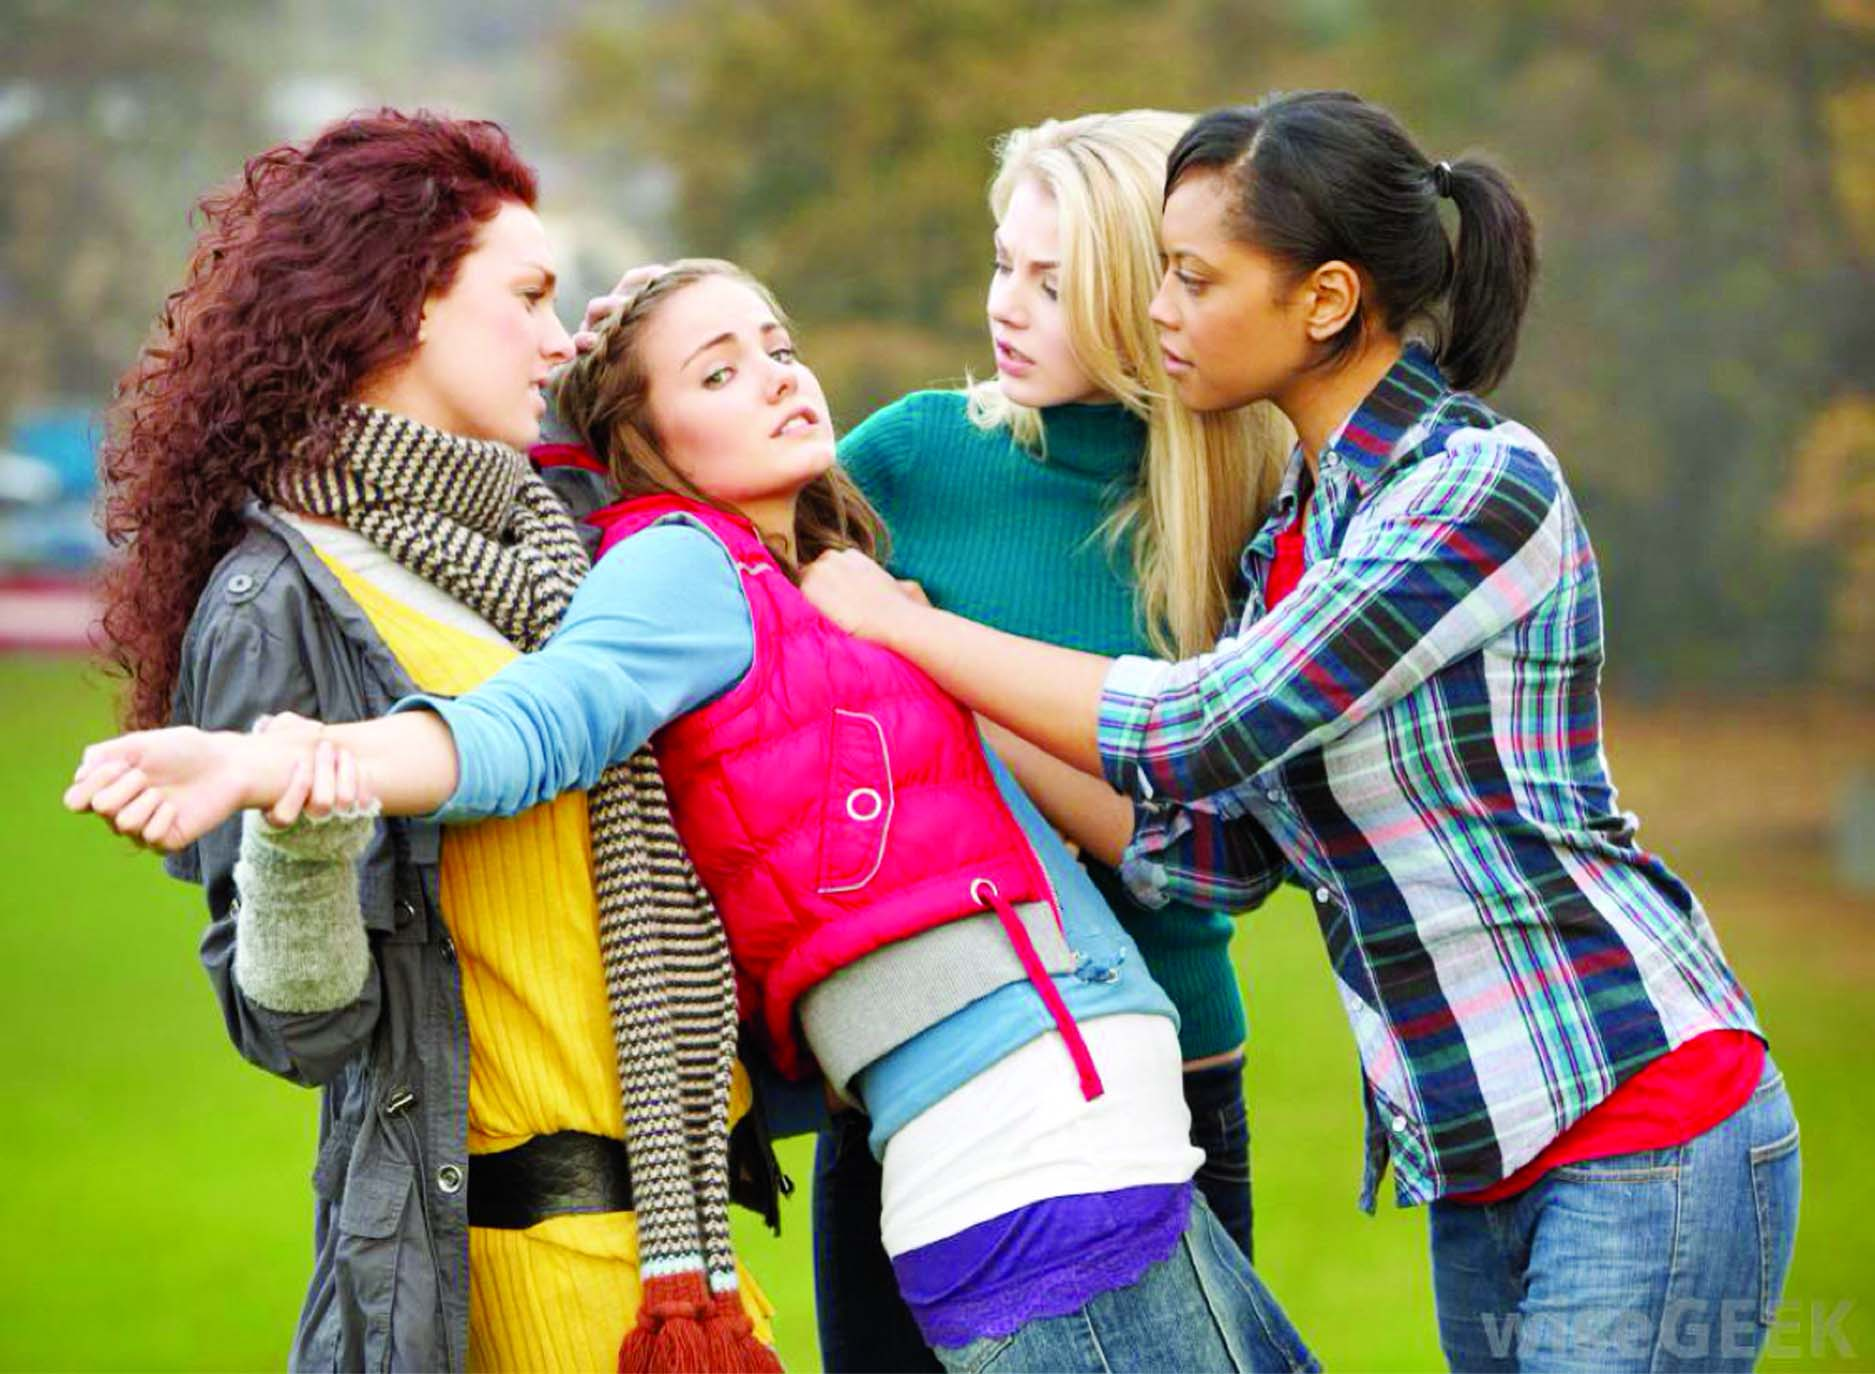 bullied Bullying is unwanted, aggressive behavior among school aged children that involves a real or perceived power imbalance the behavior is repeated, or has the potential to be repeated, over time.